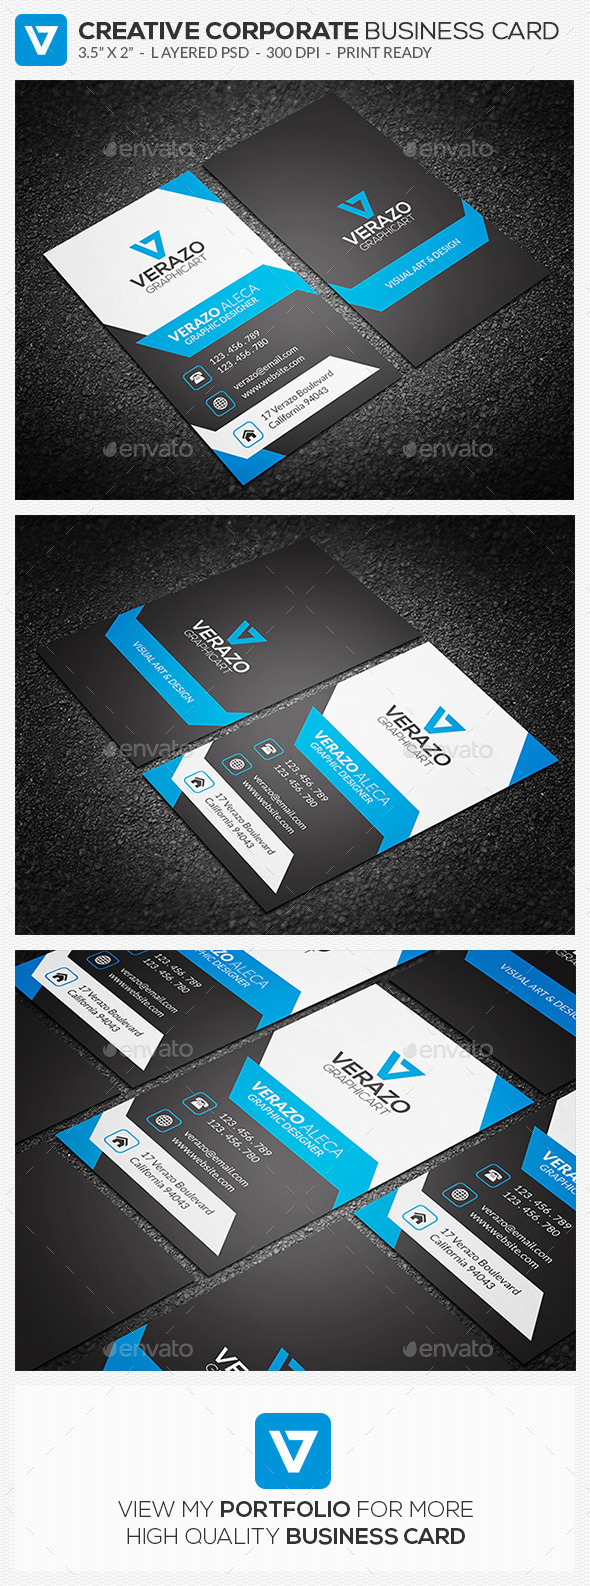 Creative & Modern Corporate Business Card 72 - Corporate Business Cards